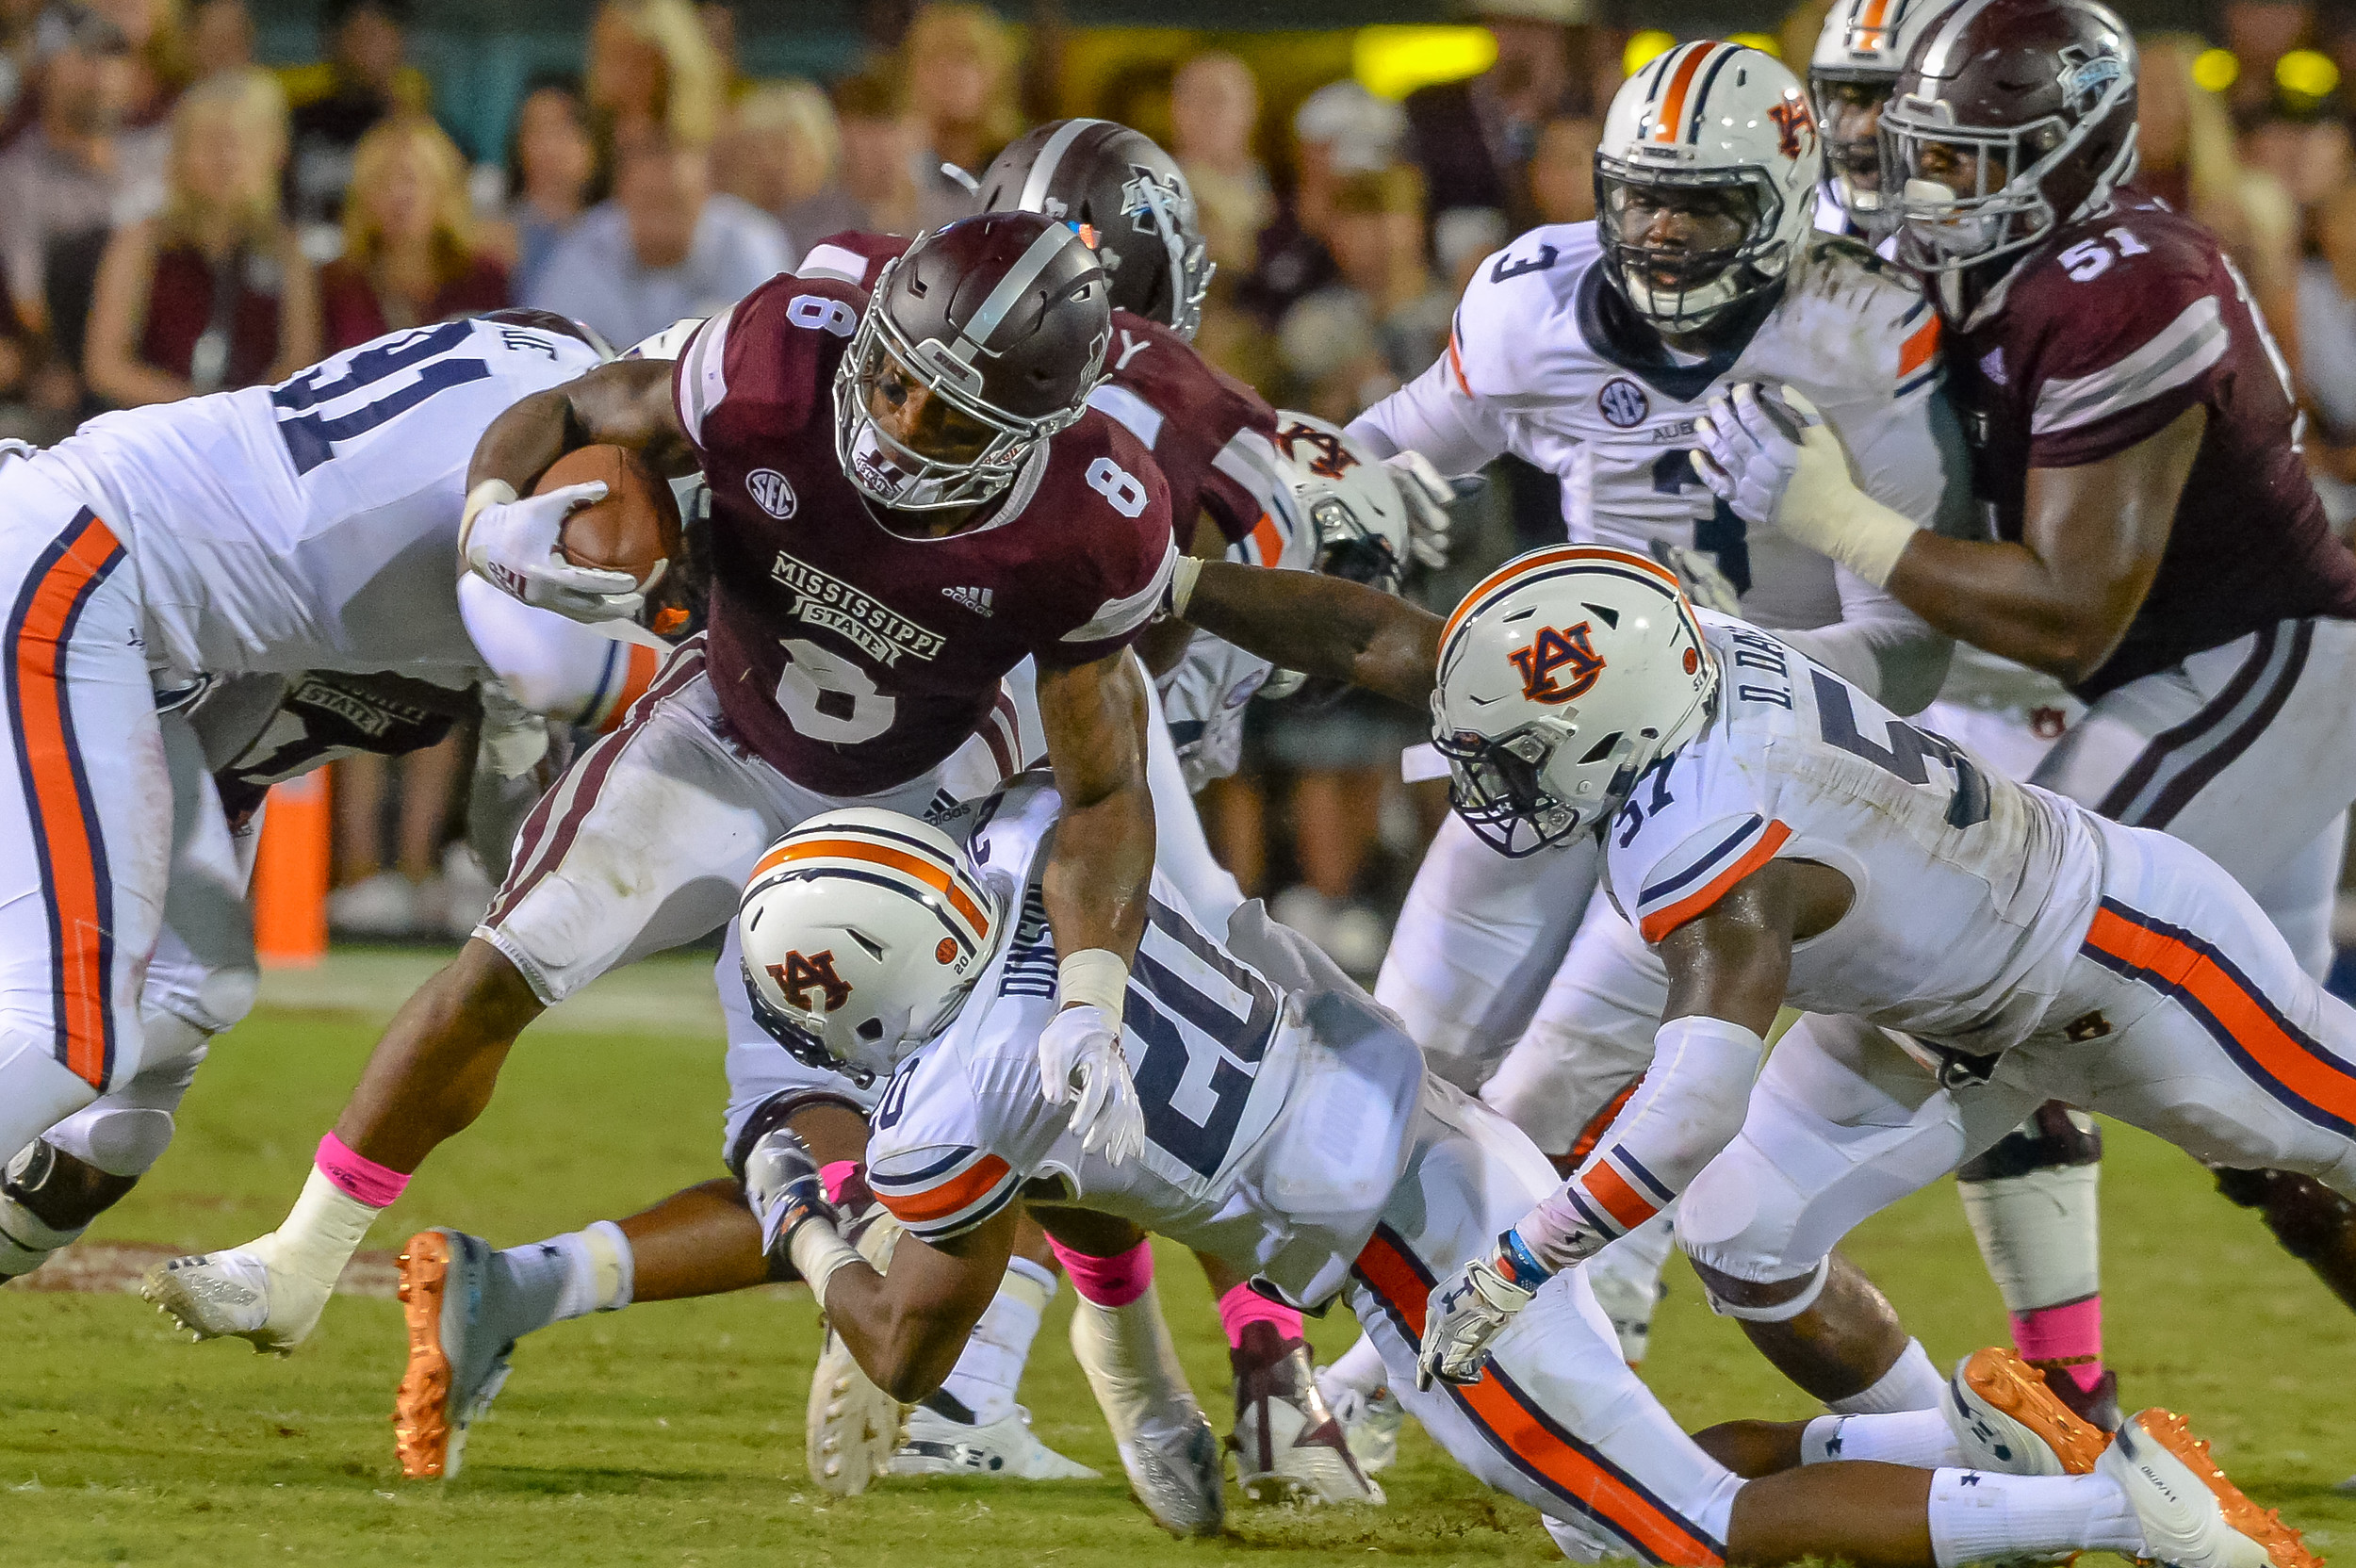 Mississippi State Bulldogs running back Kylin Hill (8) is tackled by Auburn Tigers defensive back Jeremiah Dinson (20) during the second half of Saturday's game, at Davis Wade Stadium in Starkville, MS. Daily Mountain Eagle -  Jeff Johnsey